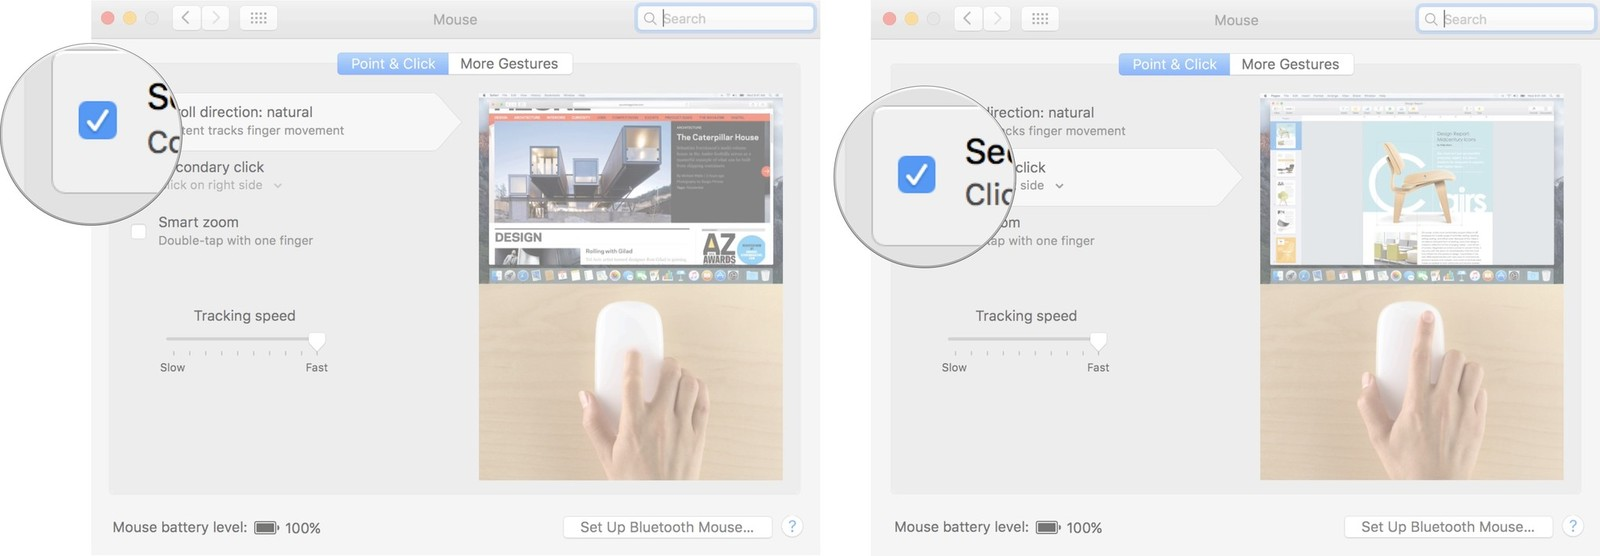 Mouse scrolling and secondary clicking on the Mac